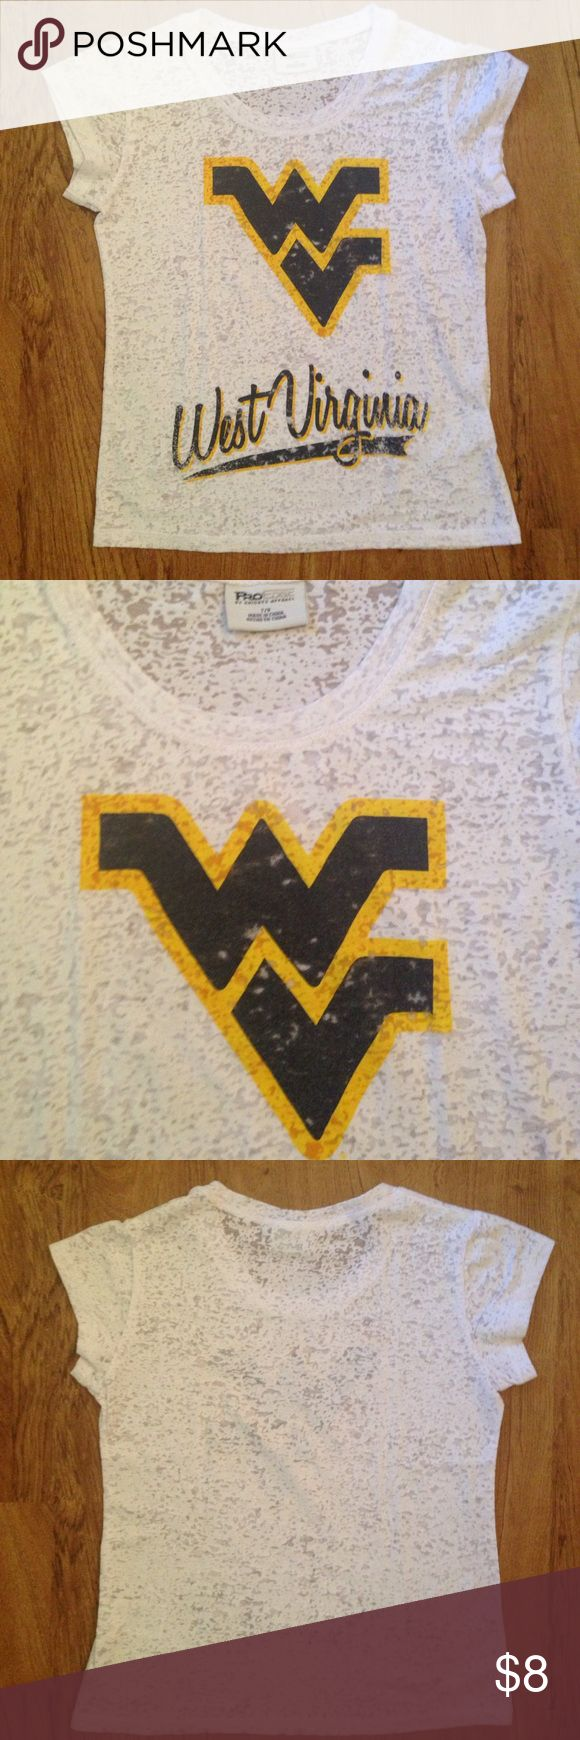 WV Girls Tee Lightweight and perfect for summer! 65% cotton, 35% polyester. Bundle with the Nike WV girls shorts in another listing in my closet for a cute and comfortable outfit! Pro Edge by Knights Apparel Shirts & Tops Tees - Short Sleeve